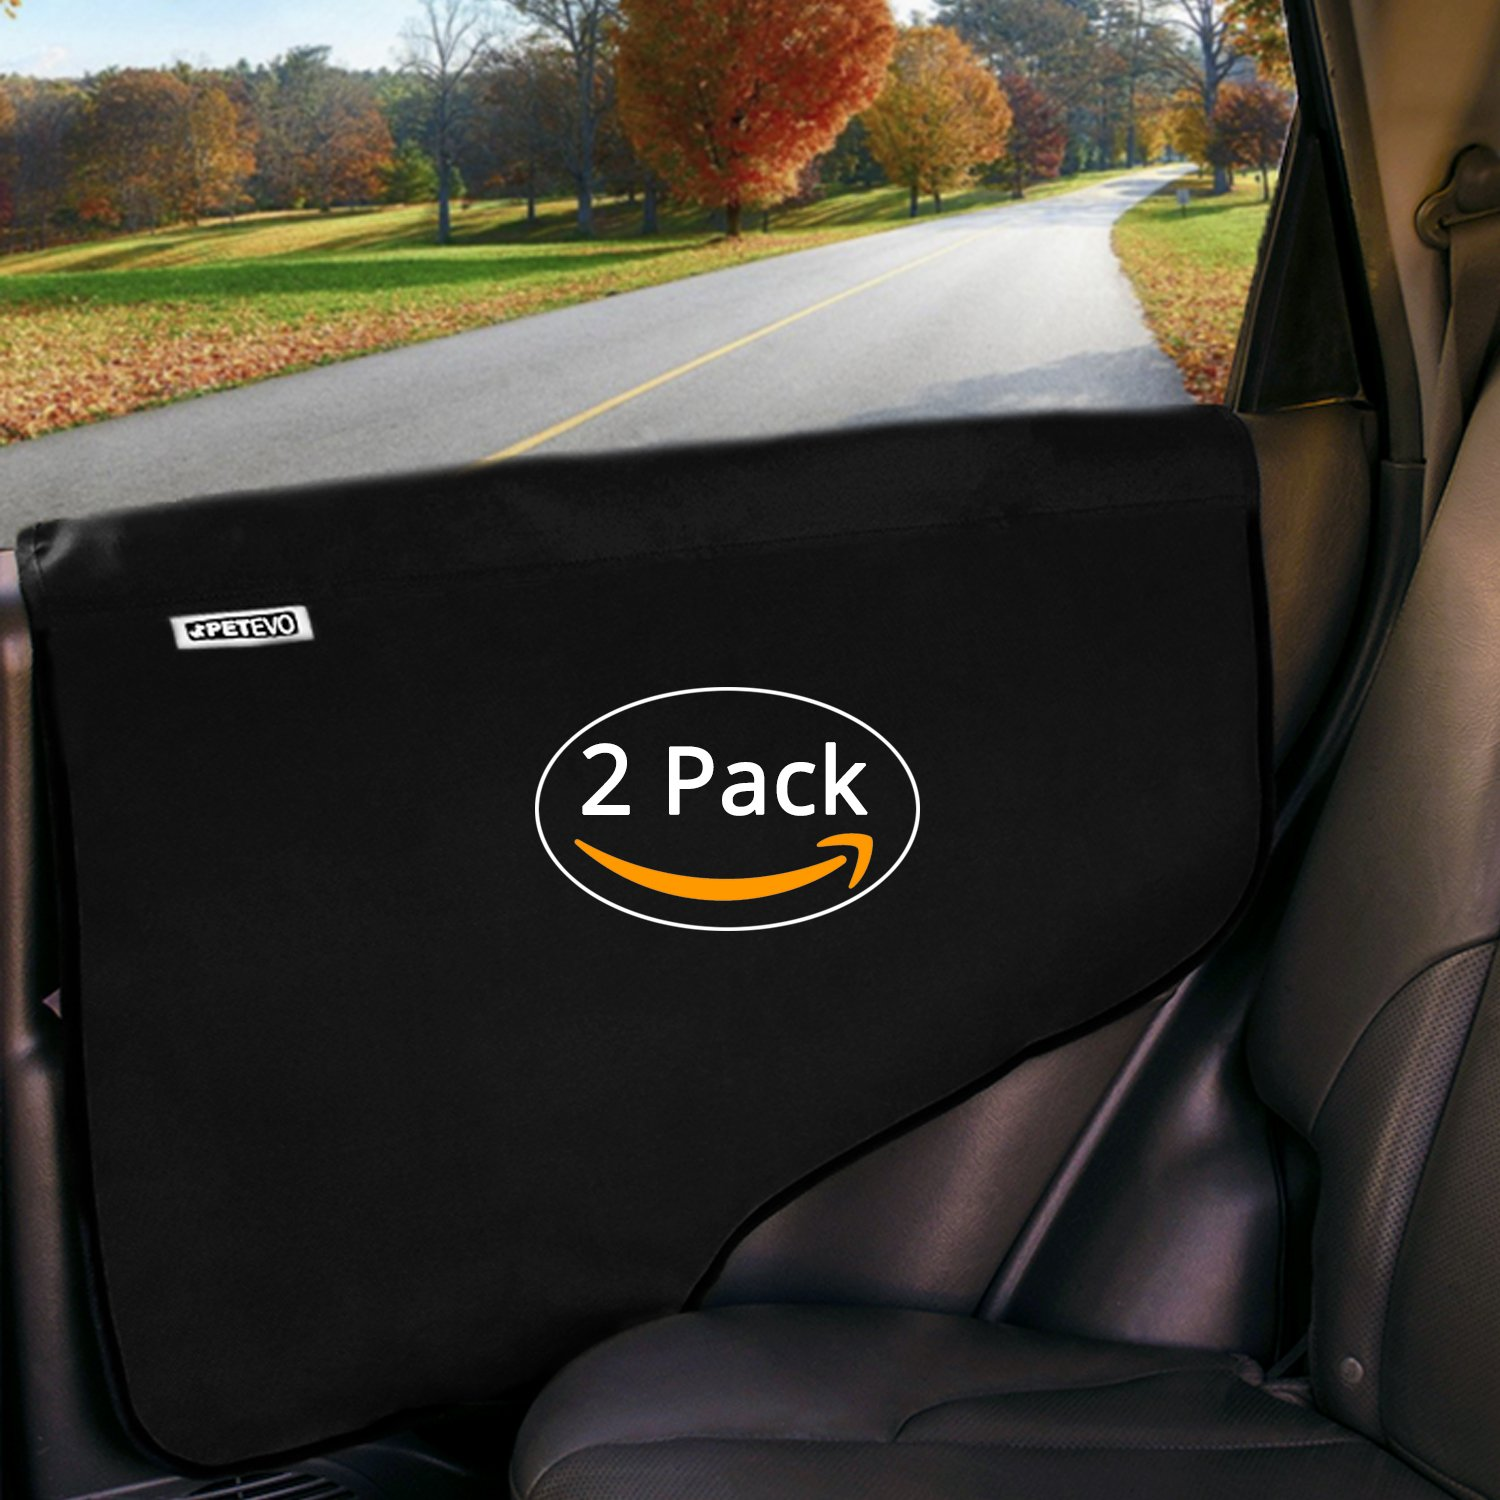 Amazon.com : Pet Car Door Protector for Dogs | Interior Cover Guard Vehicle  Back Door Protection from Pets Scratch Drooling Nails Large Safe No Slip  Stick ...